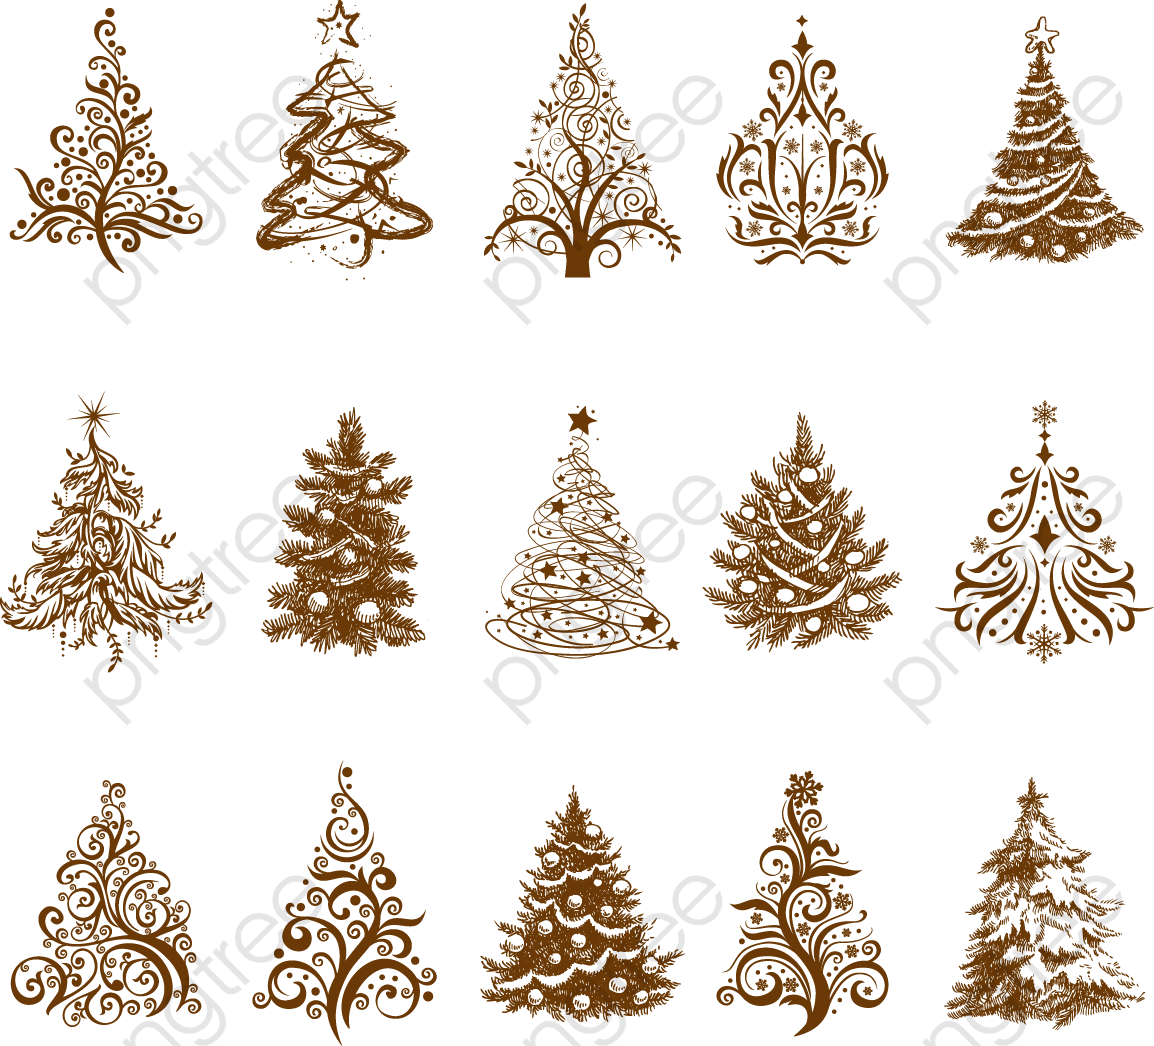 Christmas Tree Vector.All Kinds Of Vintage Christmas Tree Vector Material Tree